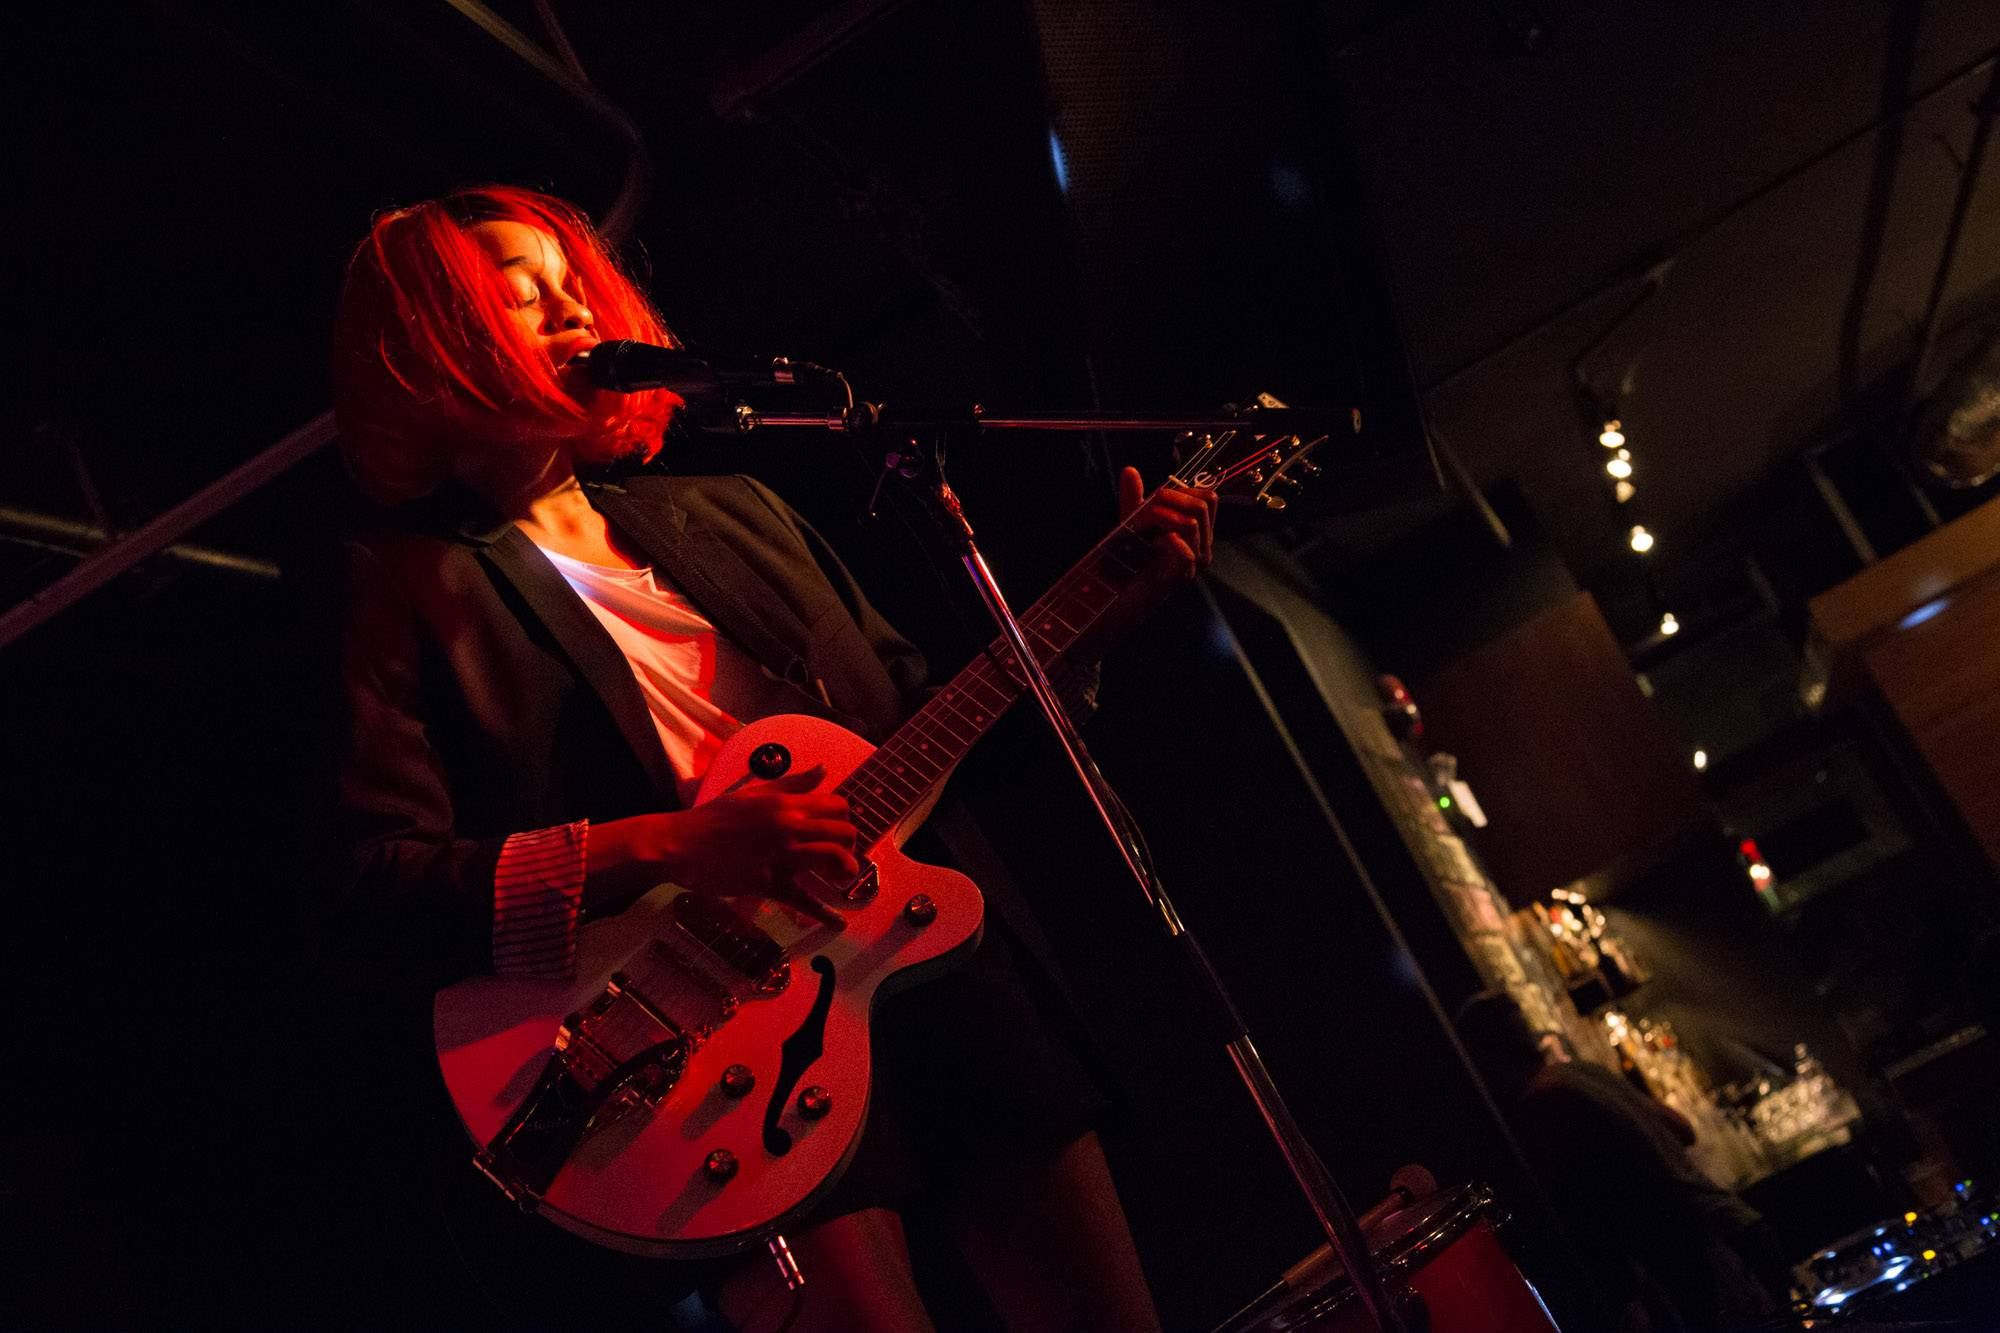 Adia Victoria at the Electric Owl, Vancouver, Mar. 21 2015. Kirk Chantraine photo.